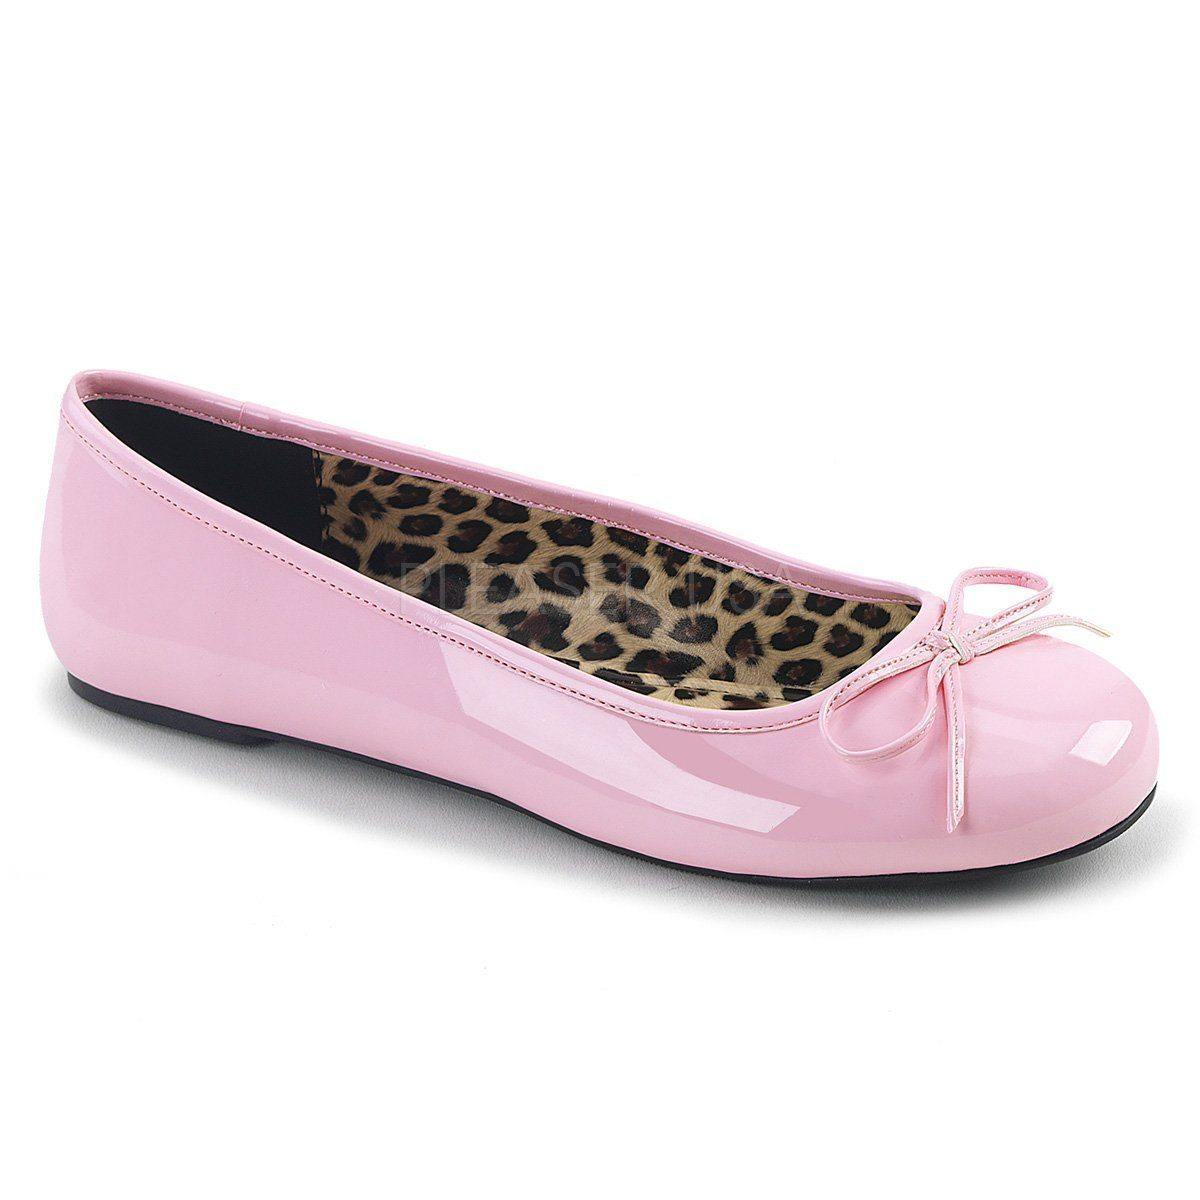 Ballet Flat Shoes with Bow